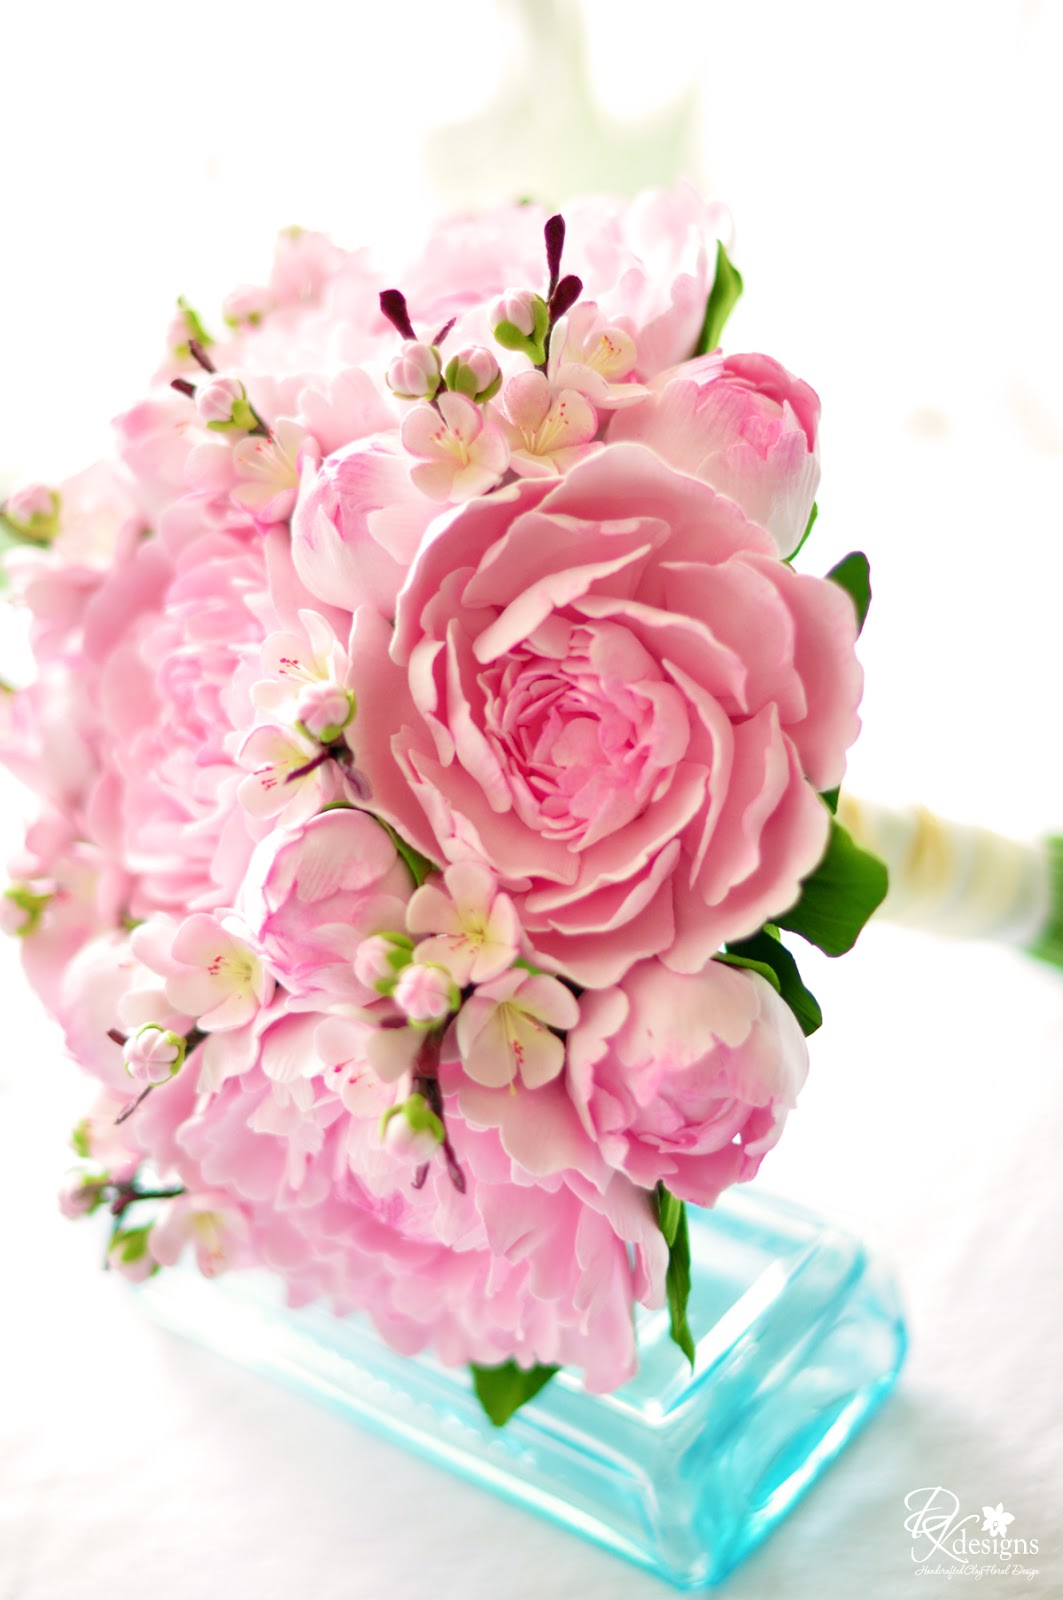 Pink Peony and Cherry Blossom Bouquet - DK Designs